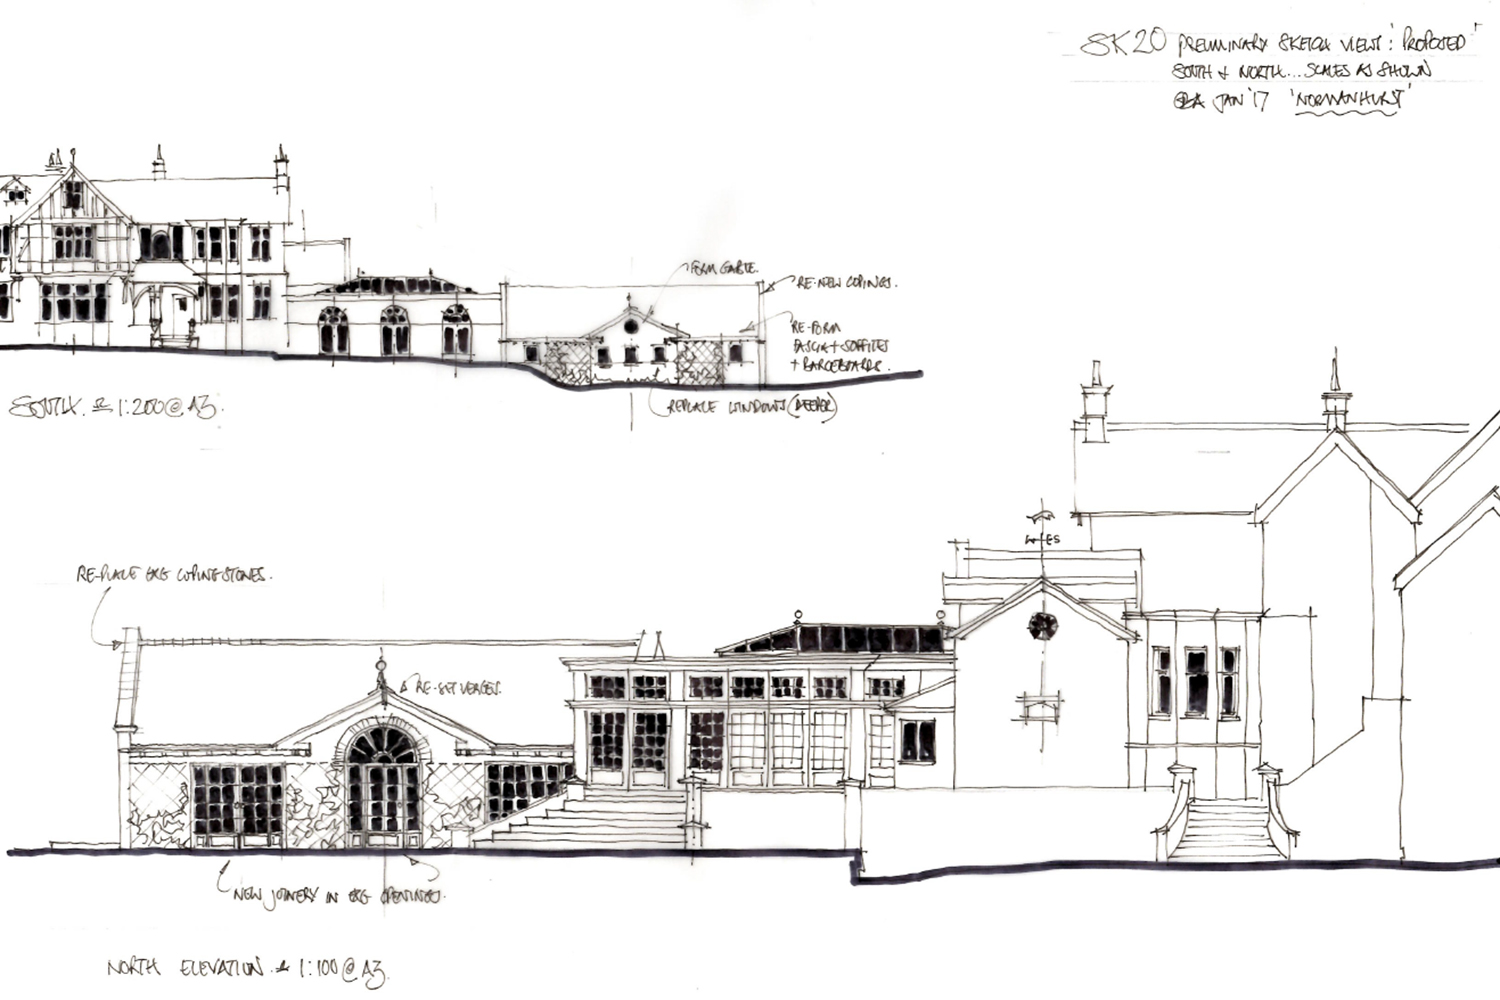 SK20 - Elevation As Proposed (1) copy.jpg